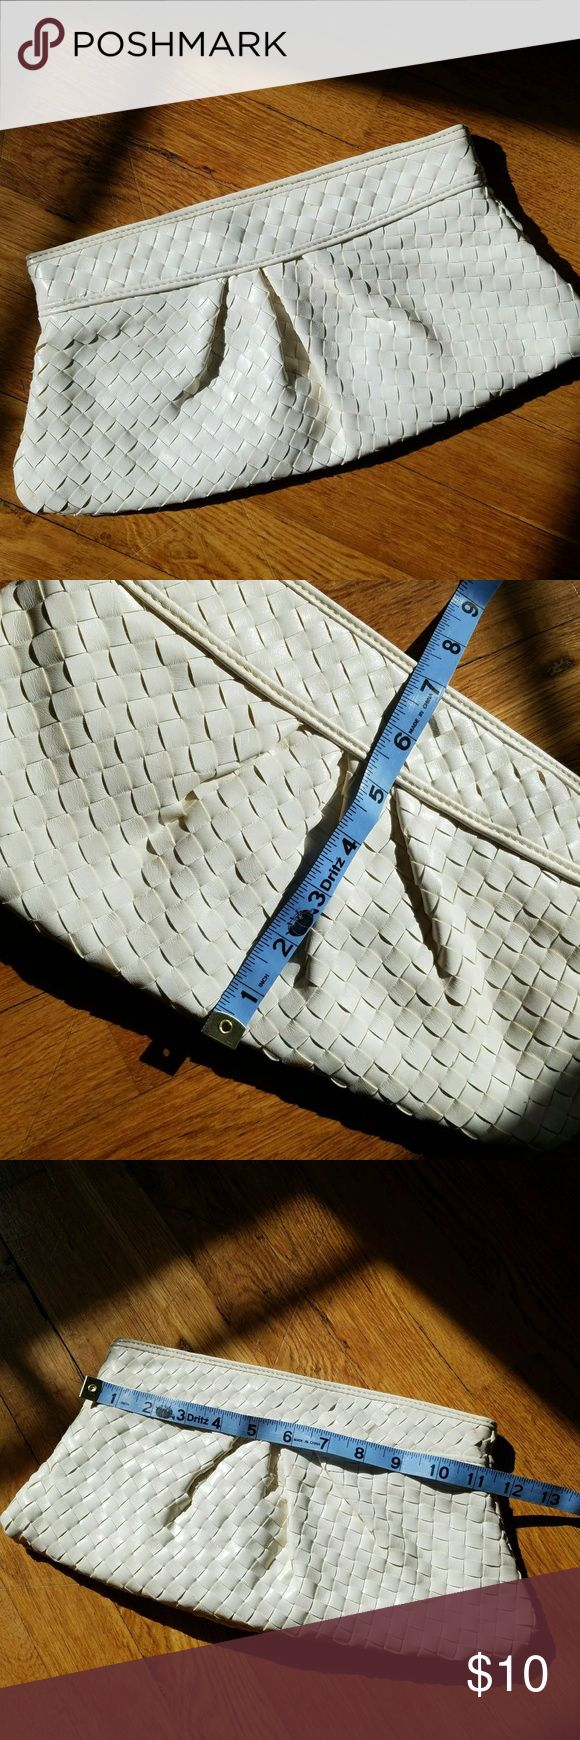 "off white woven vegan pleather clutch Weave design soft faux leather fabric. Opens with one main compartment that zips shut and also has a hidden magnet. Is about 1"" thick  Like new, used once. Great for wedding guests! From a smoke free home. Urban Expressions Bags Clutches & Wristlets"